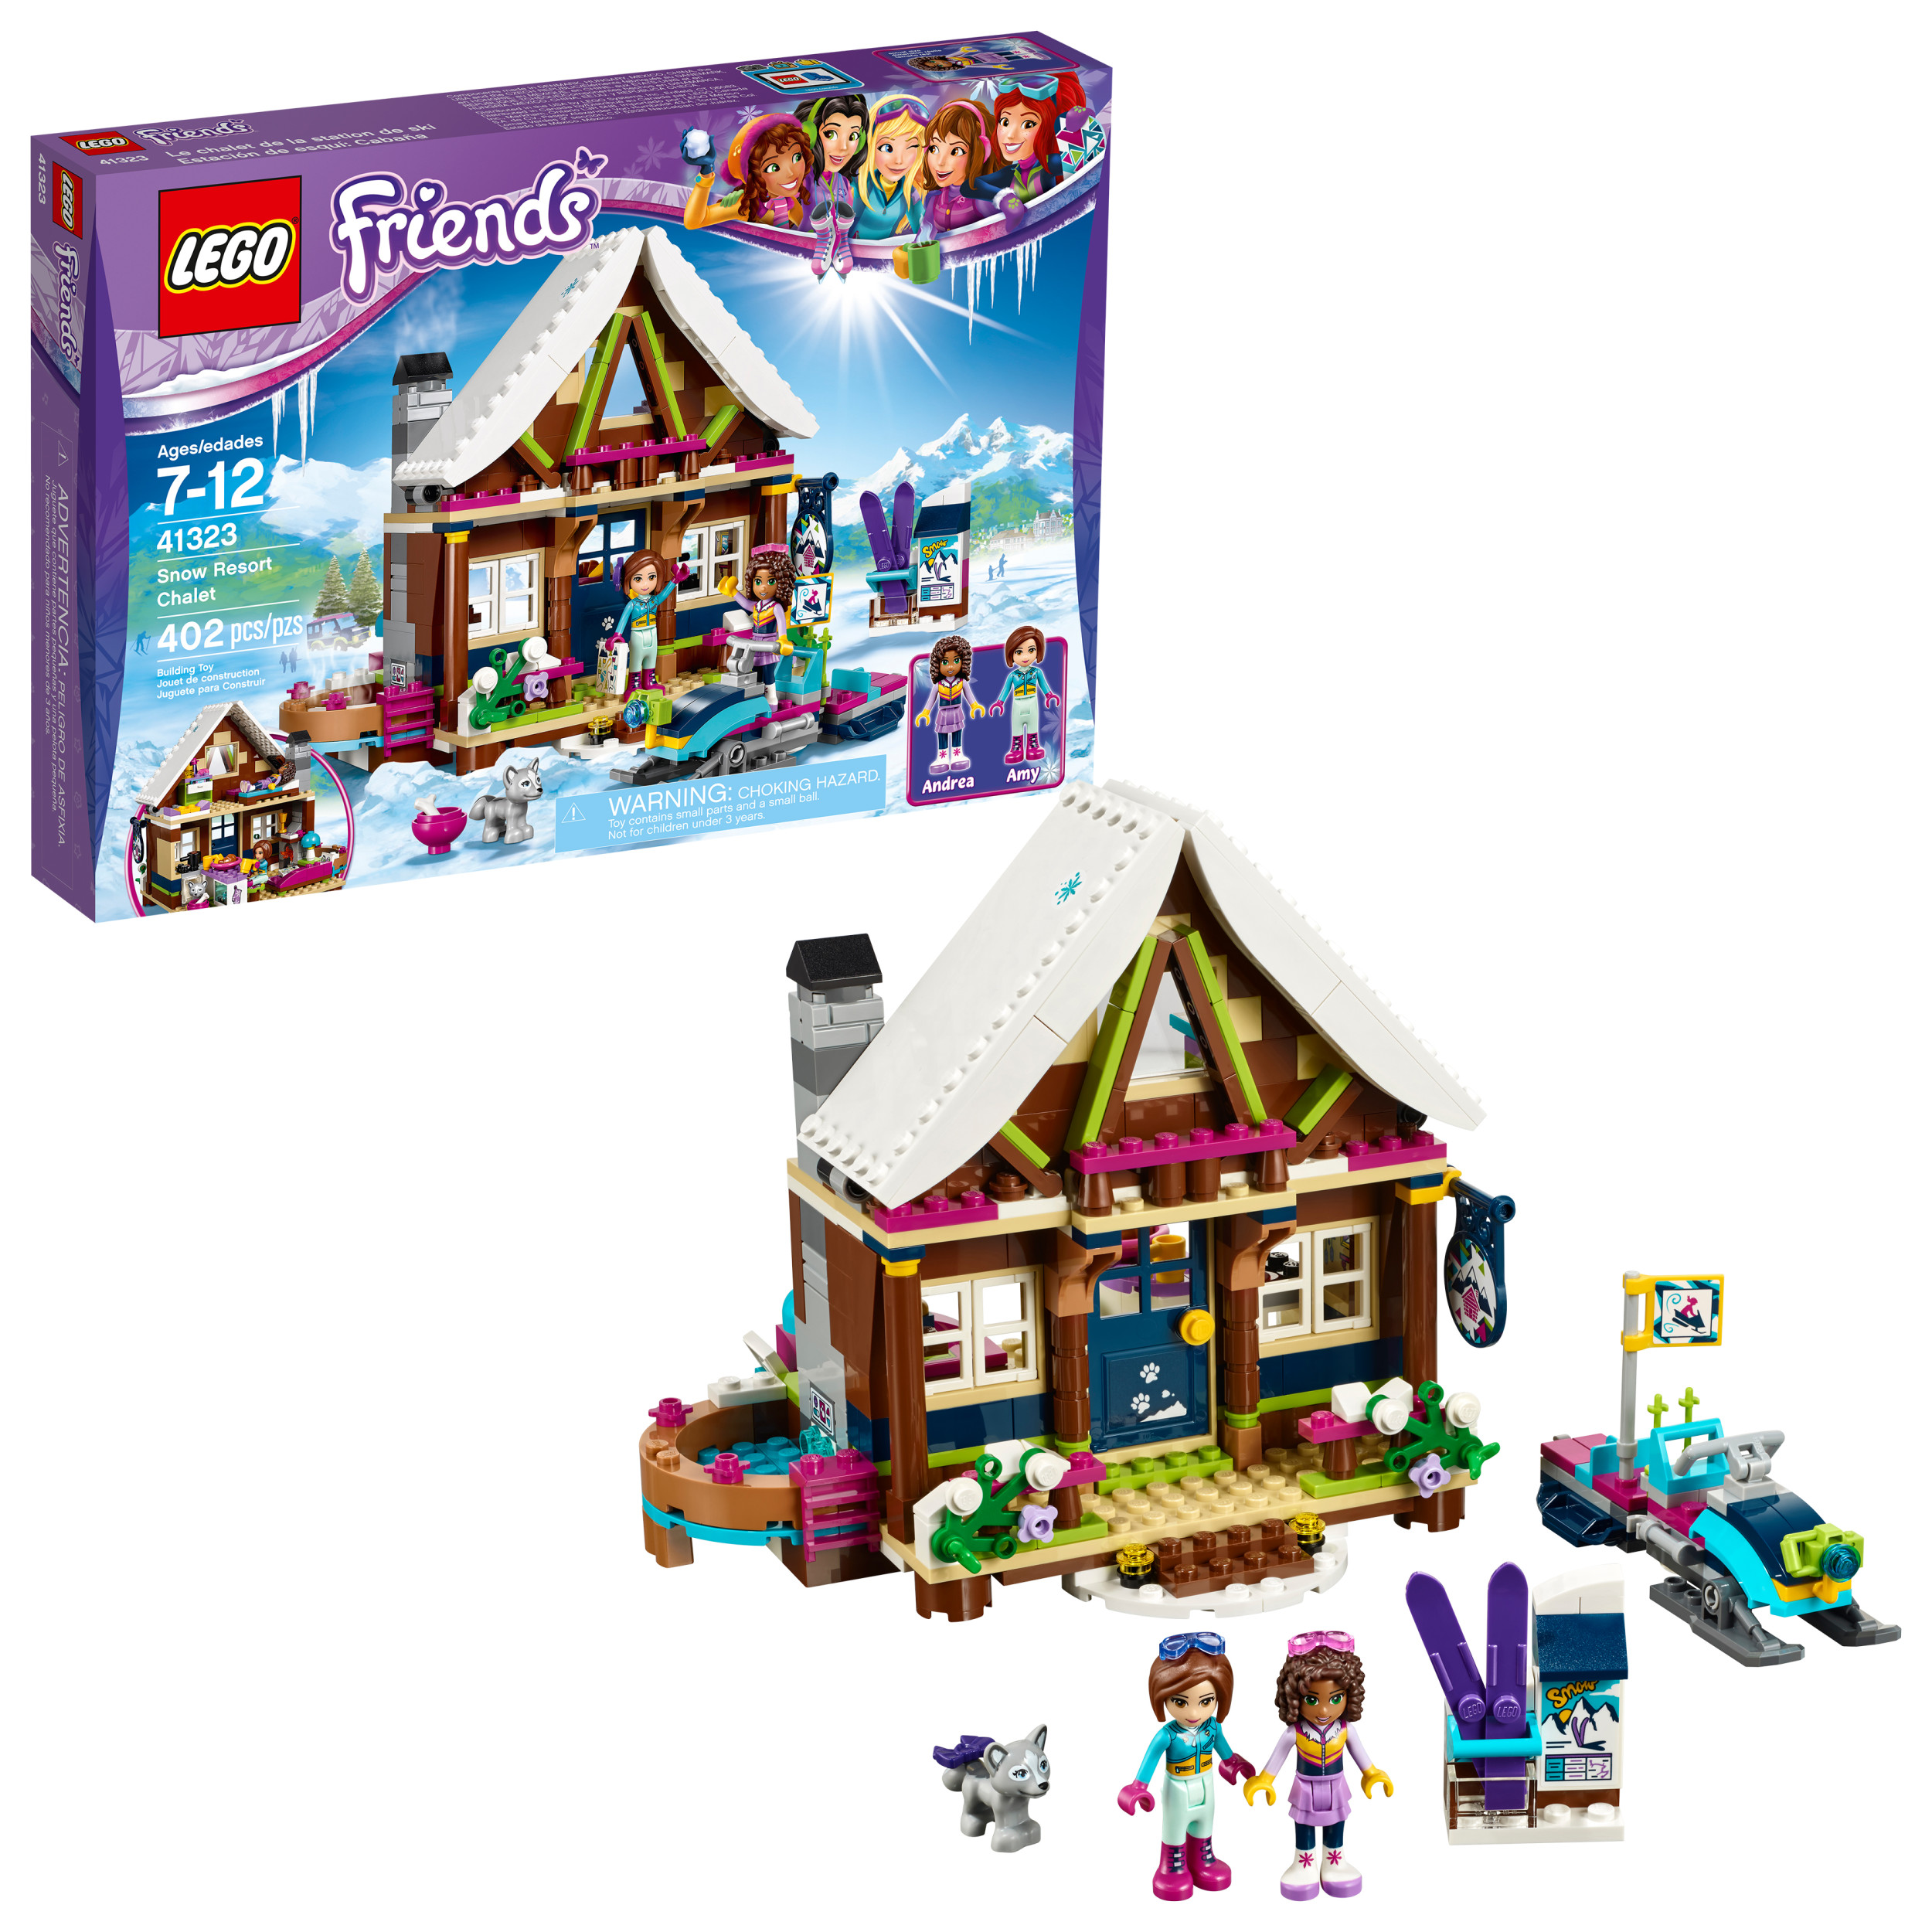 LEGO Friends Snow Resort Chalet 41323 (402 Pieces)